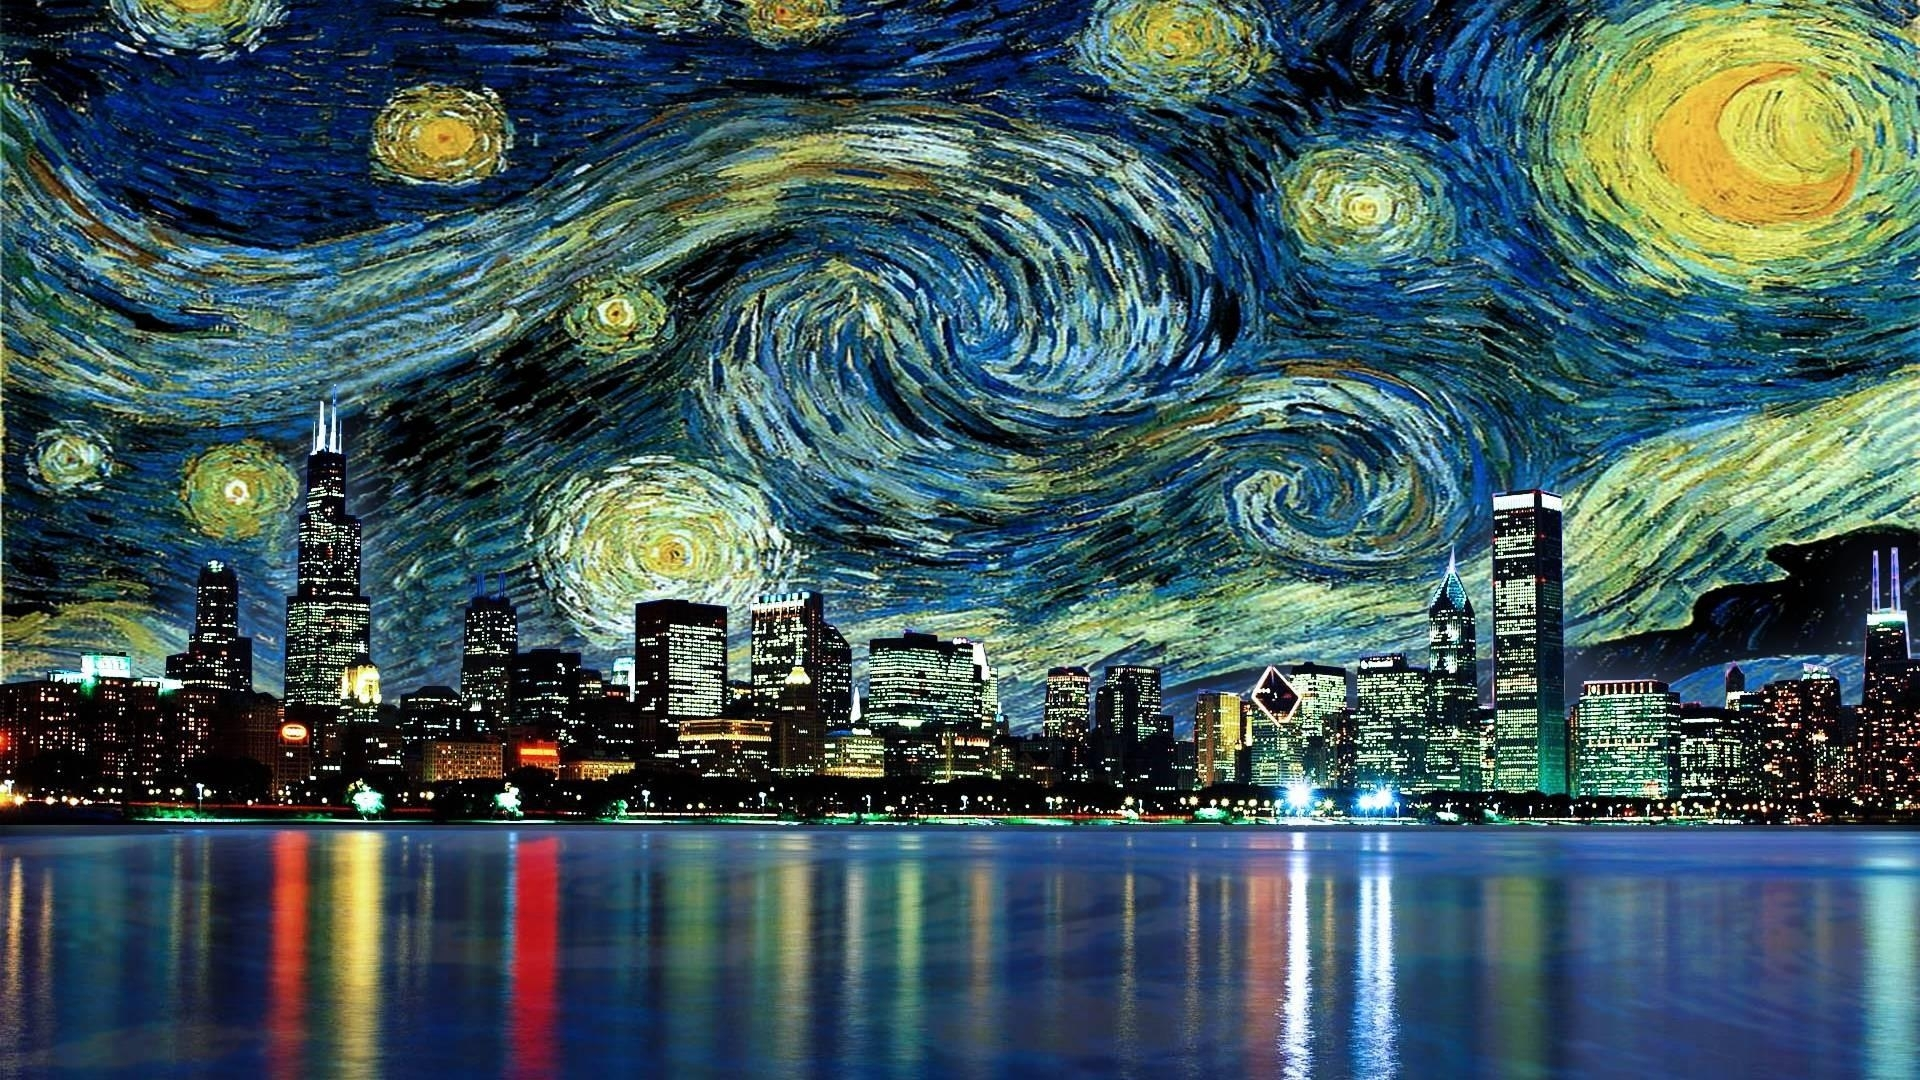 vincent van gogh - the starry night wallpaper | wallpaper studio 10